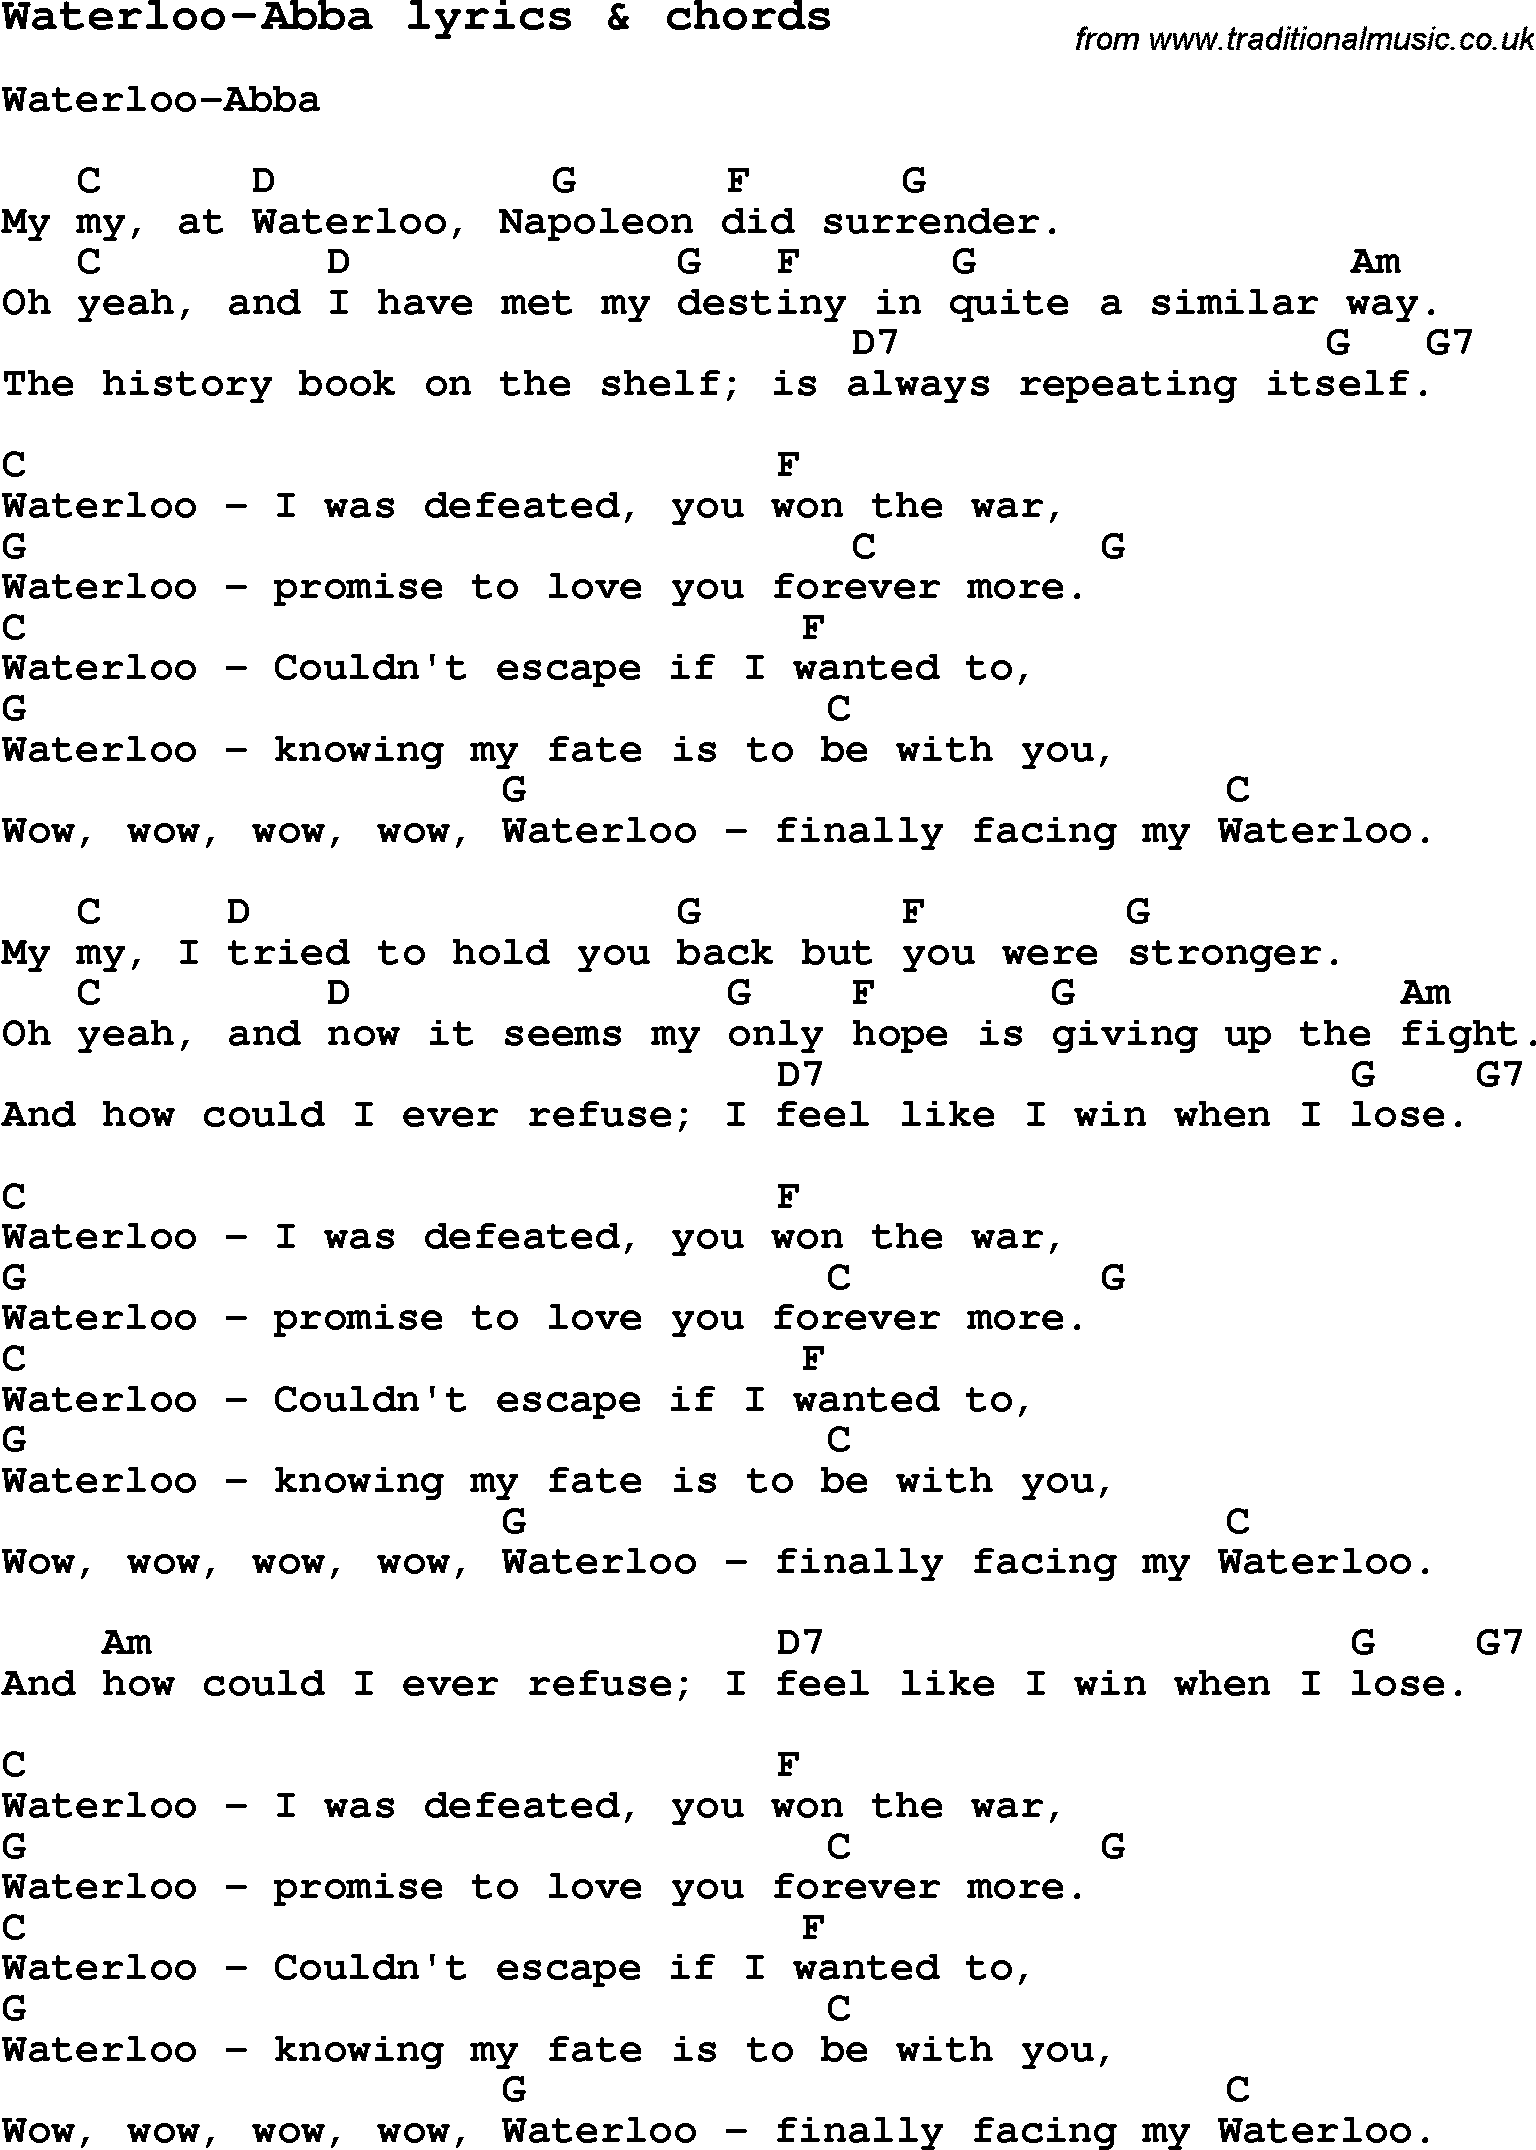 Love Song Lyrics For Waterloo Abba With Chords For